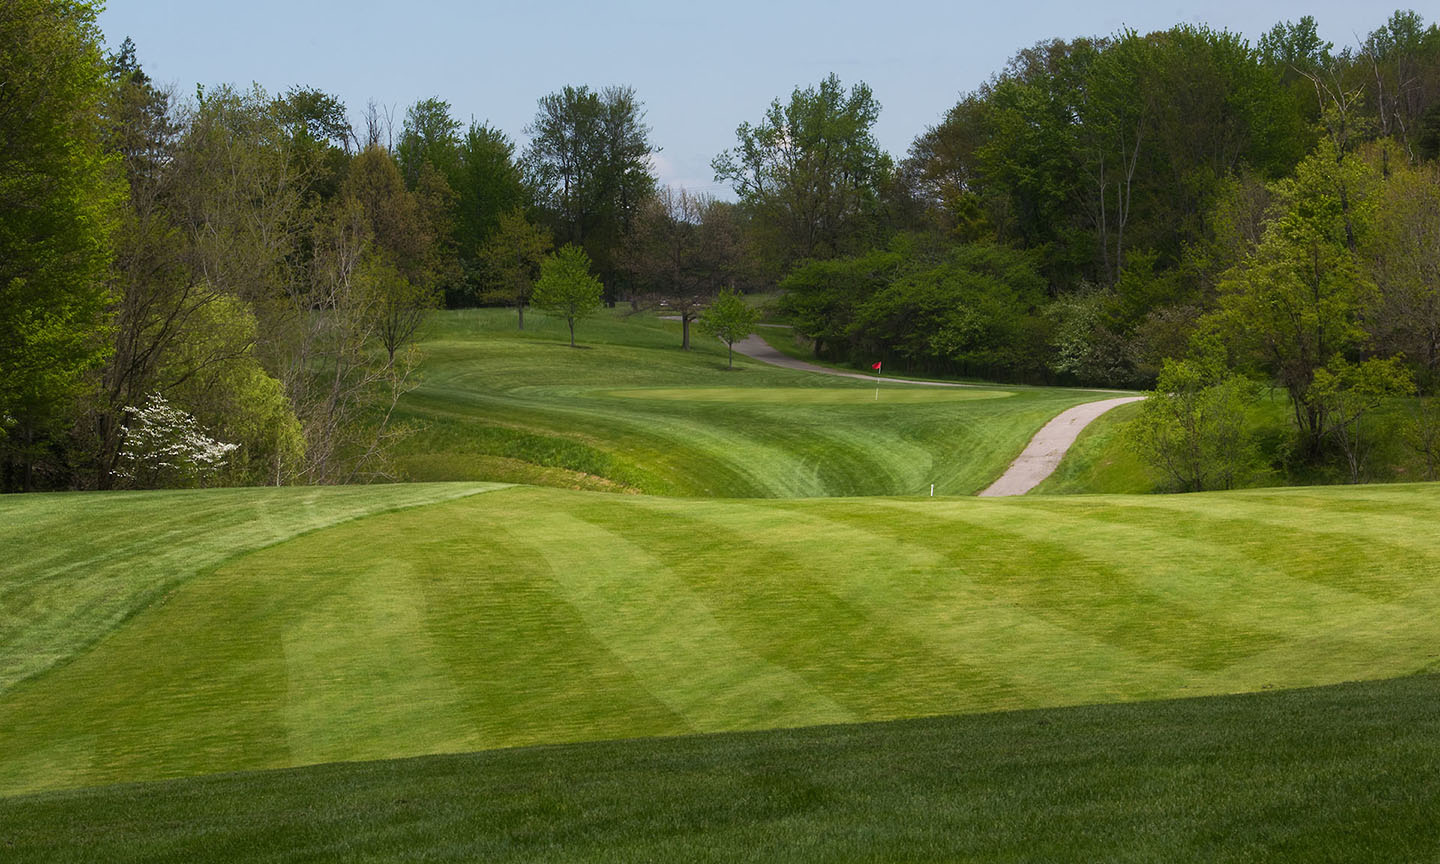 The Double Bogey Grille at Shawnee Hills